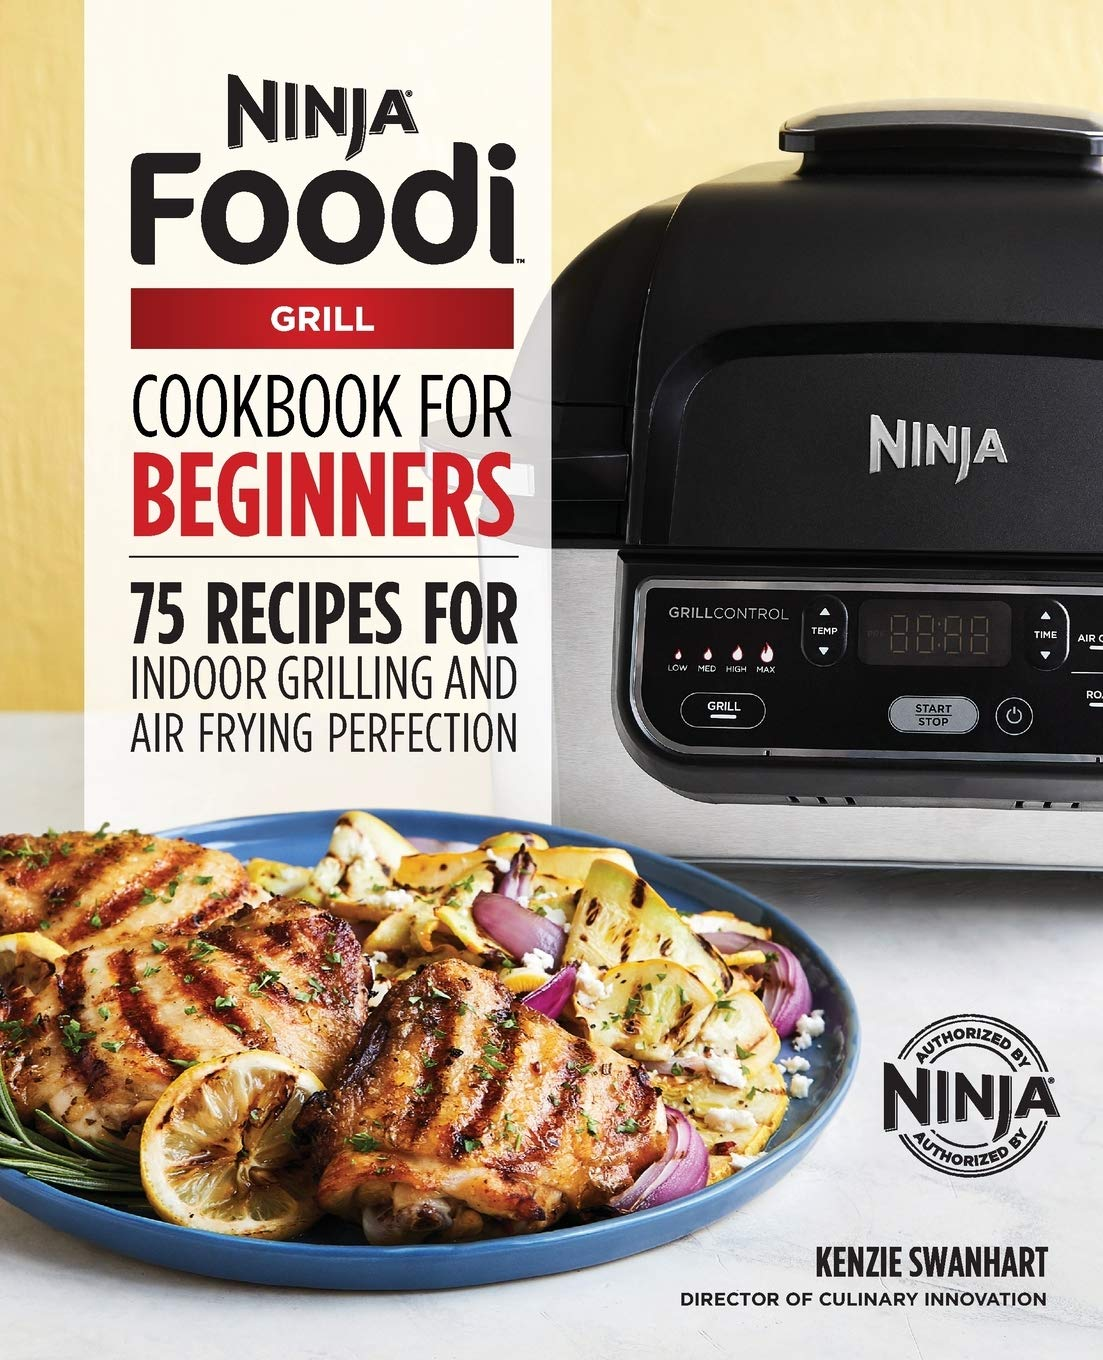 The Official Ninja Foodi Grill Cookbook For Beginners 75 Recipes